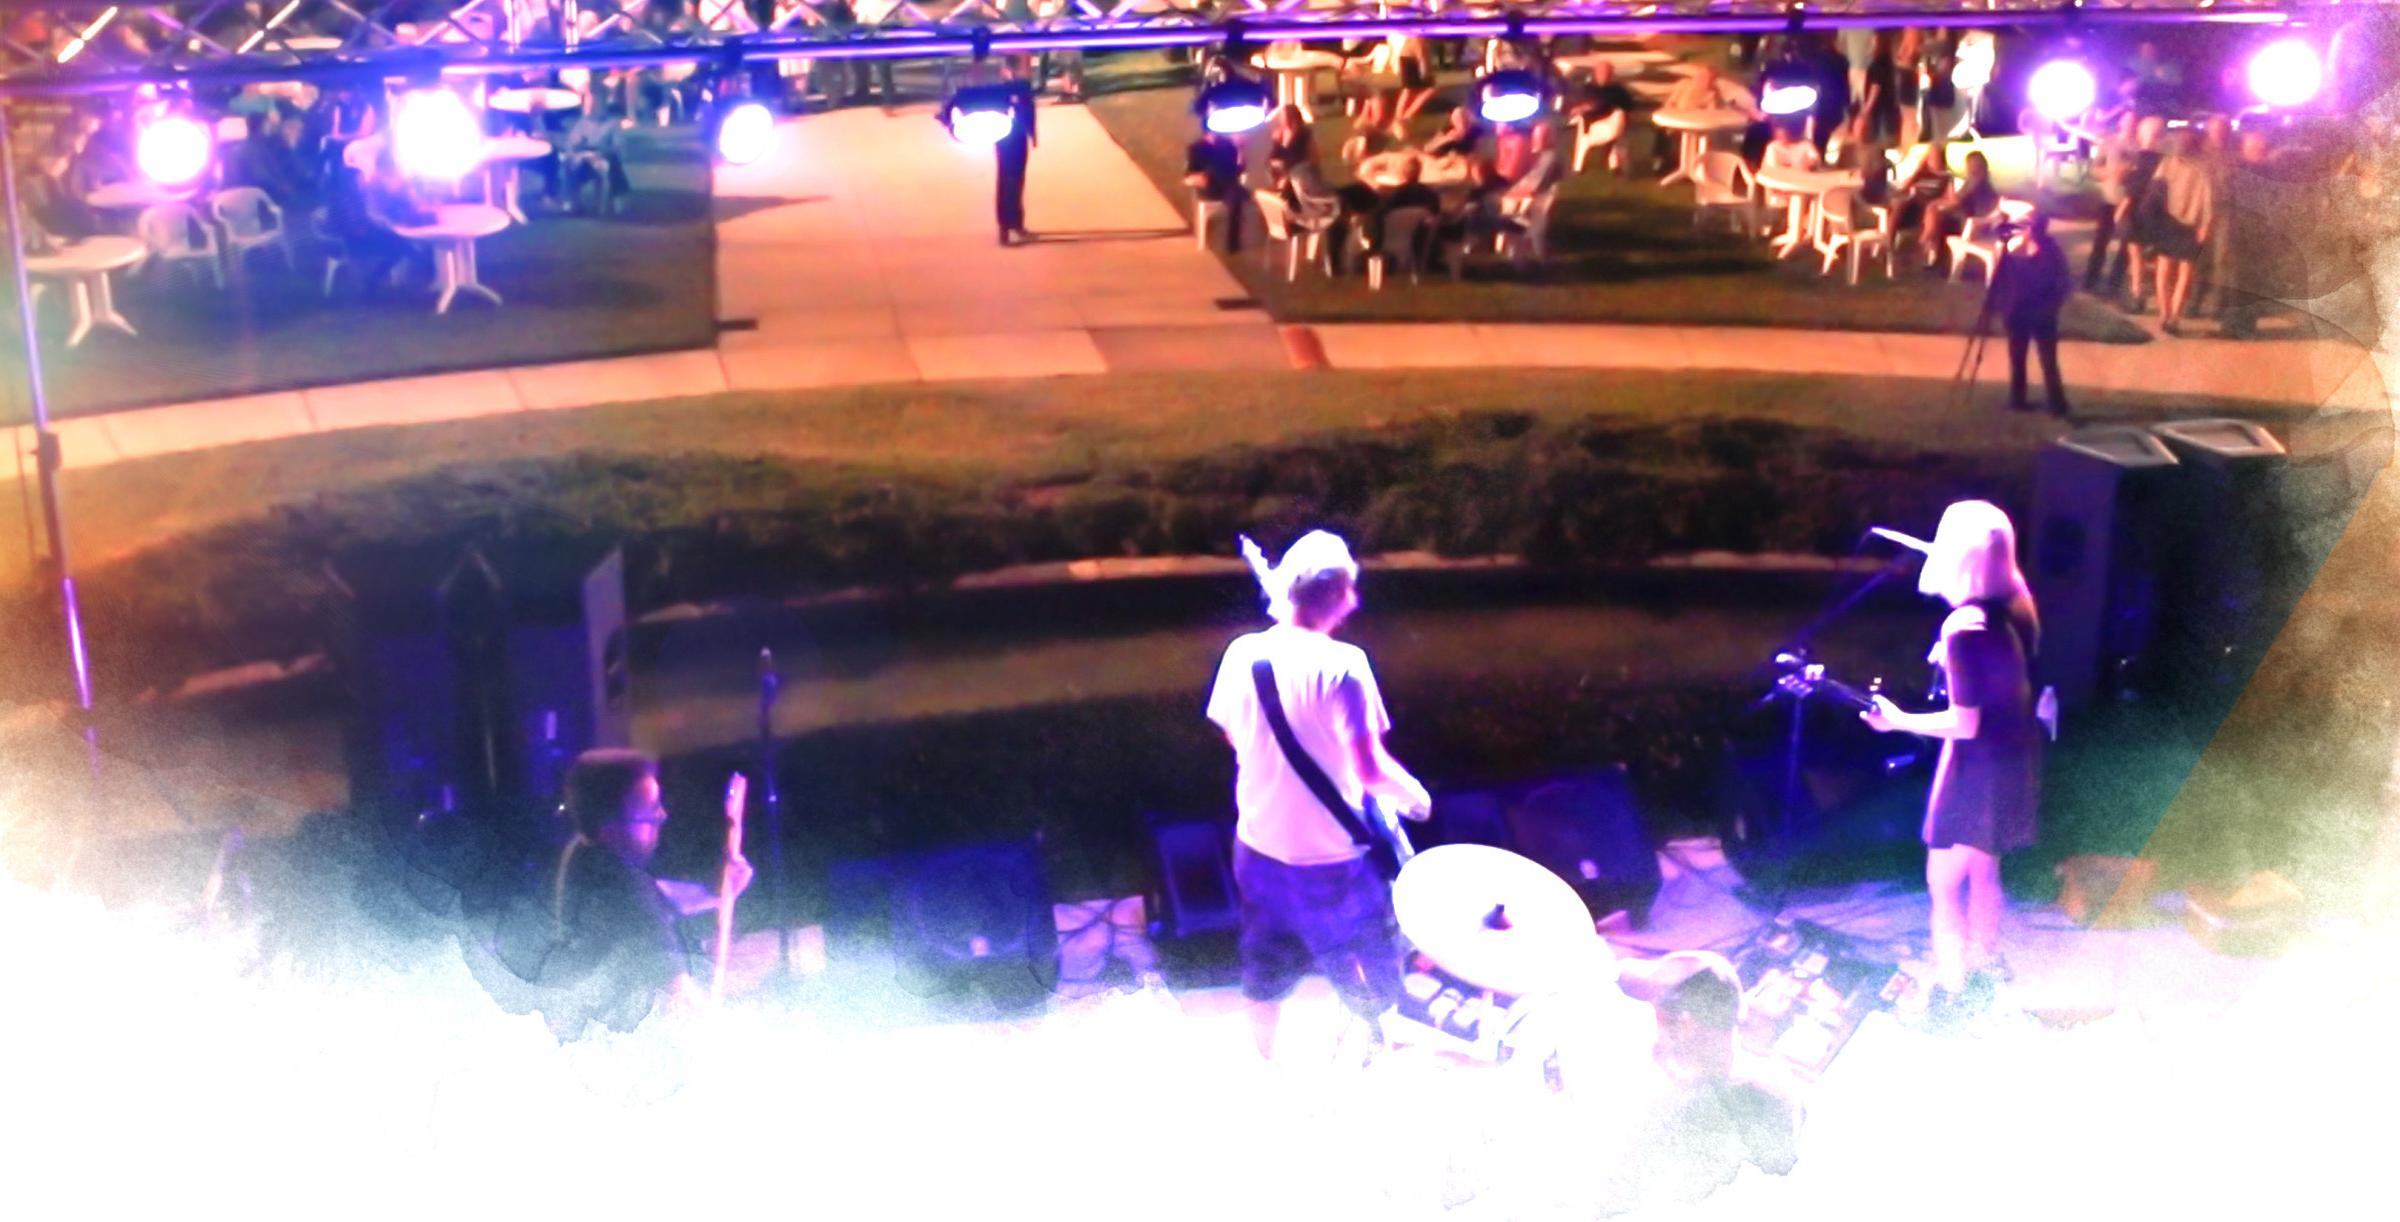 A band plays at the Ringling Underground event